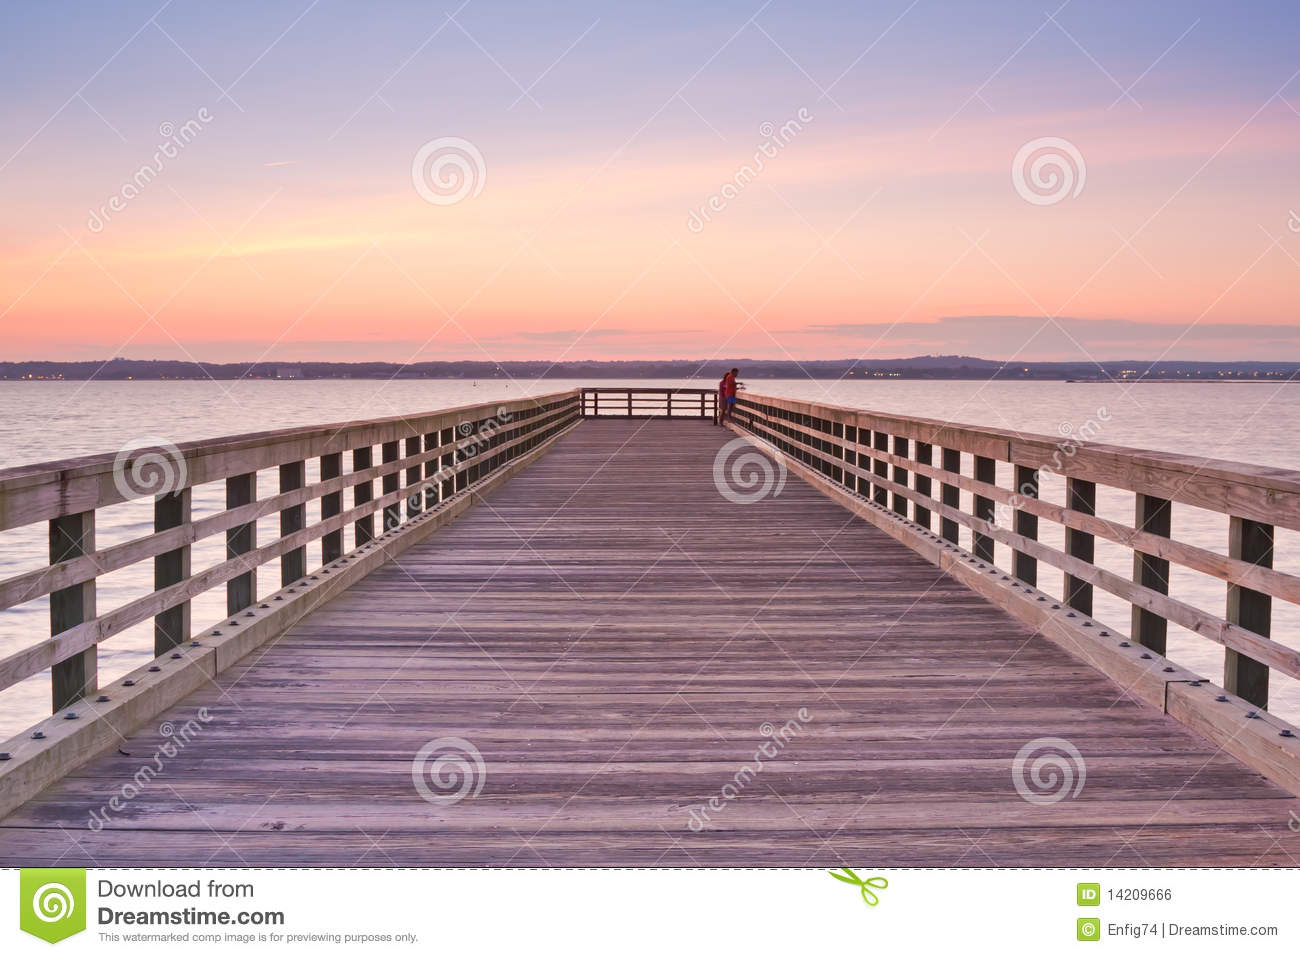 Wooden Pier at sunset